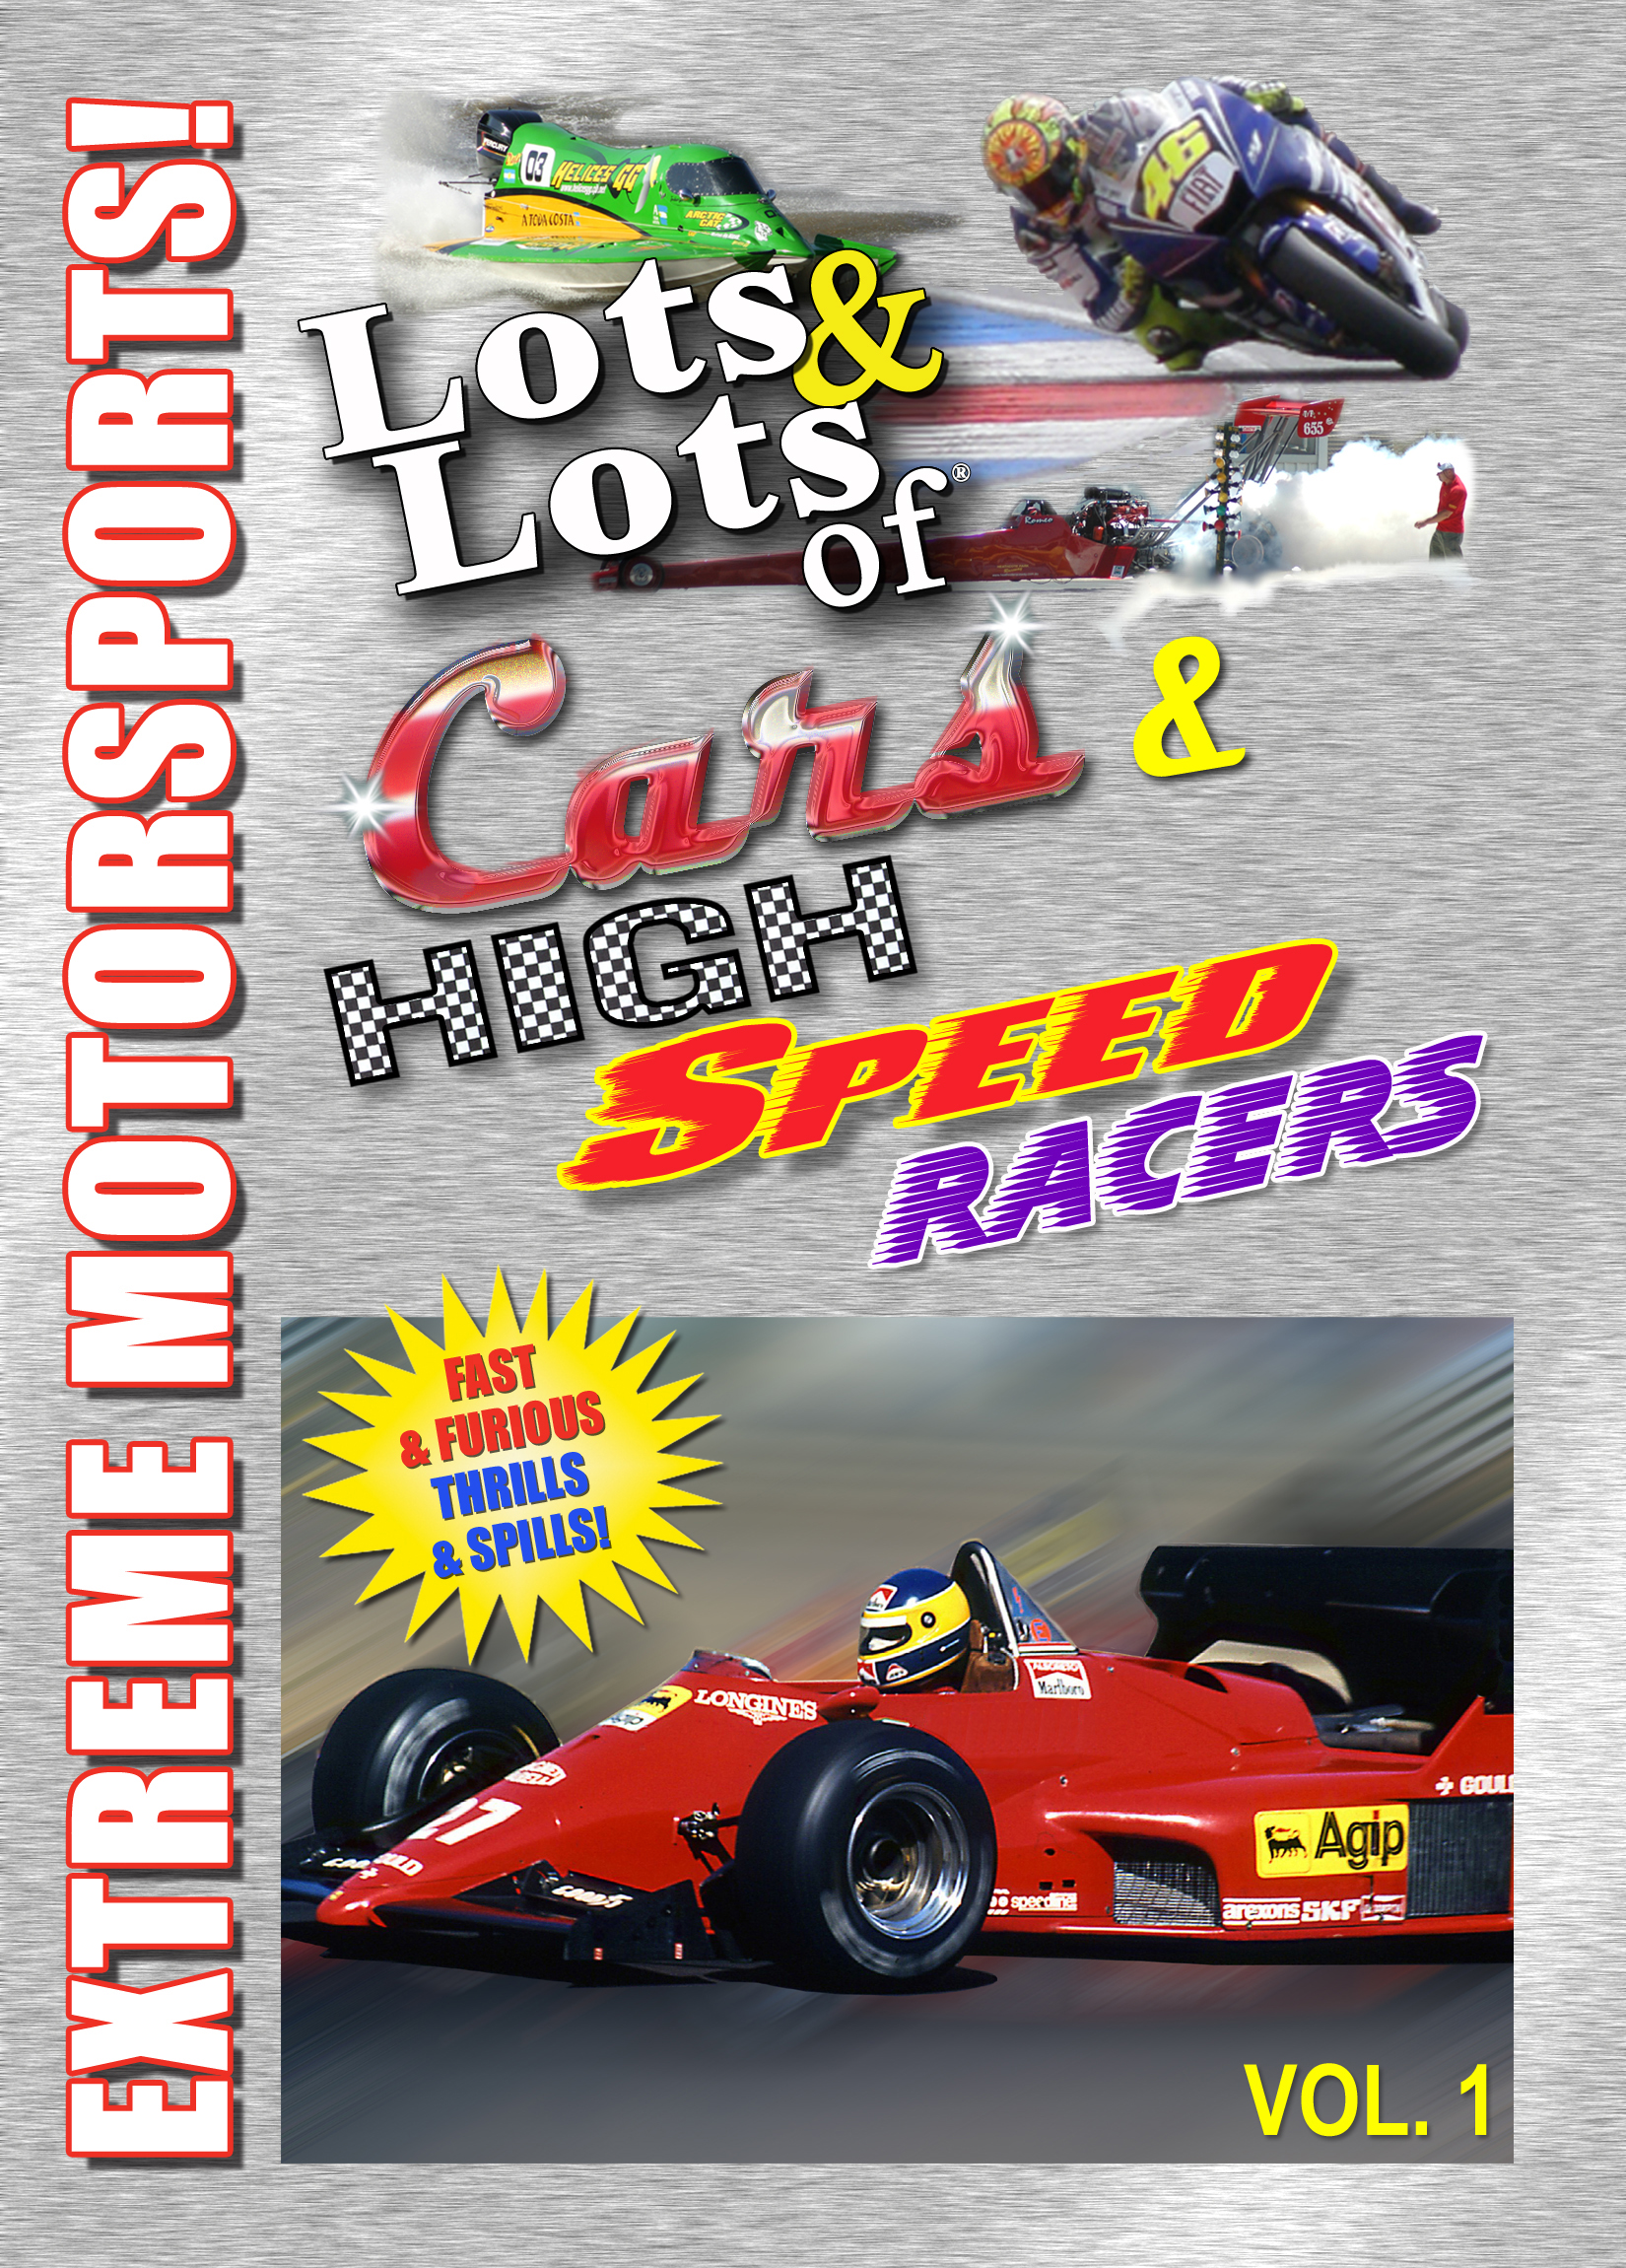 all about lots lots of fast cars monster trucks and high speed racers vol 1 dvd by motorsports drivers